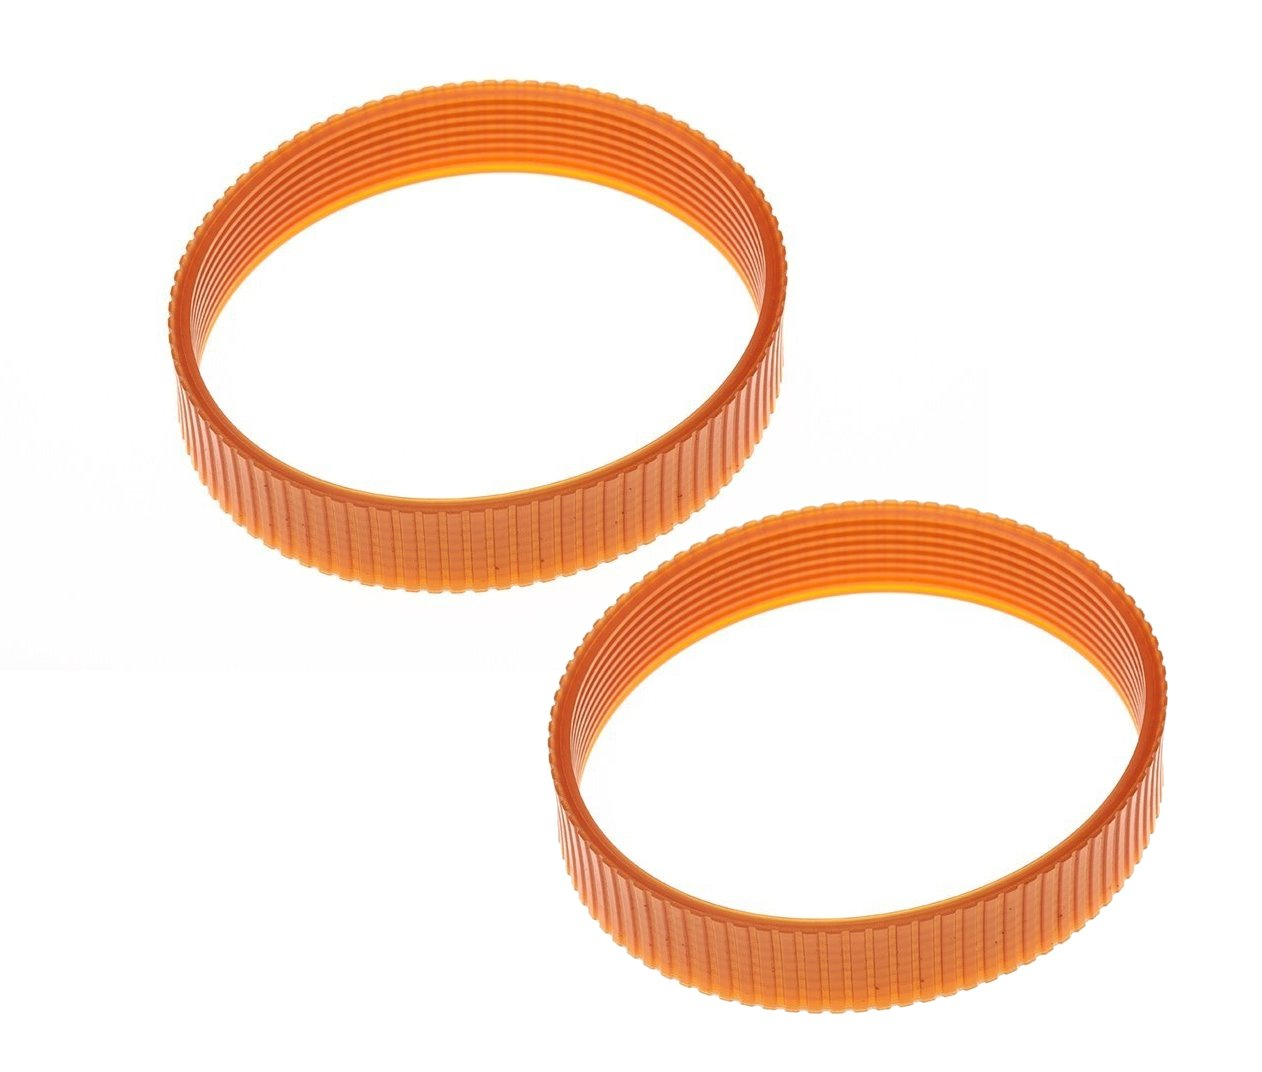 2 Pack Planer Replacement Drive Belt 429962-08 for DeWalt DW734 DW734R Planer - 9 Ribs